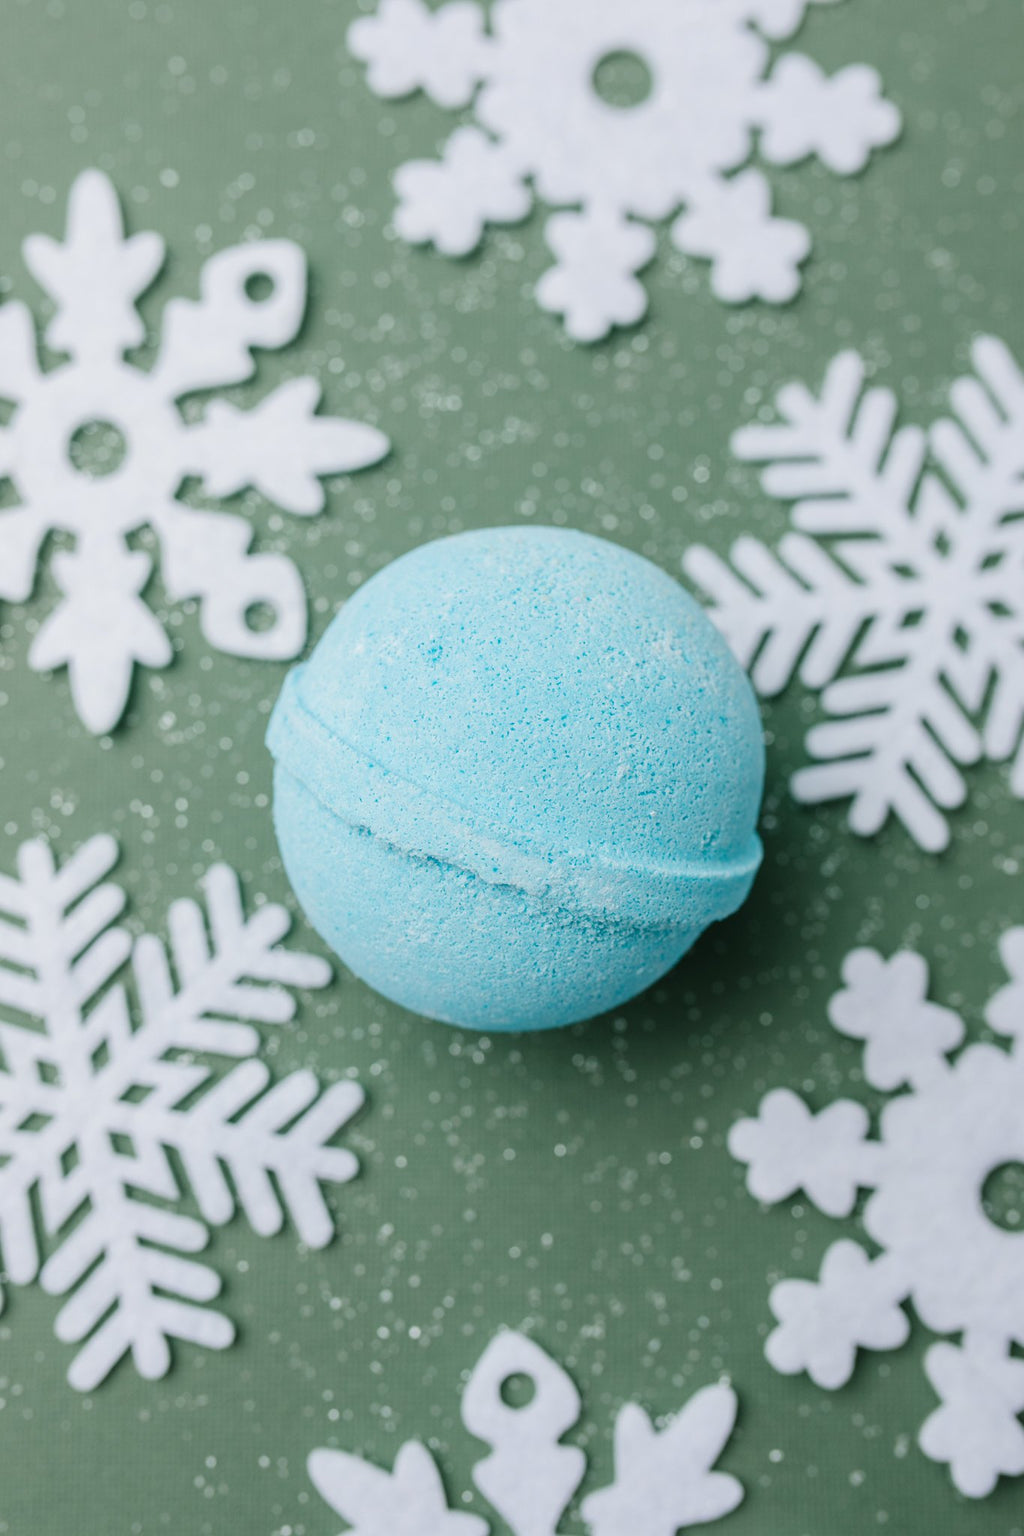 Cottage Garden Bath Bomb in Blue Christmas-11-19-2020, Accessories, BFCM2020, Group A, Group B, Group C, Group X, Holiday Gifts-Womens Artisan USA American Made Clothing Accessories